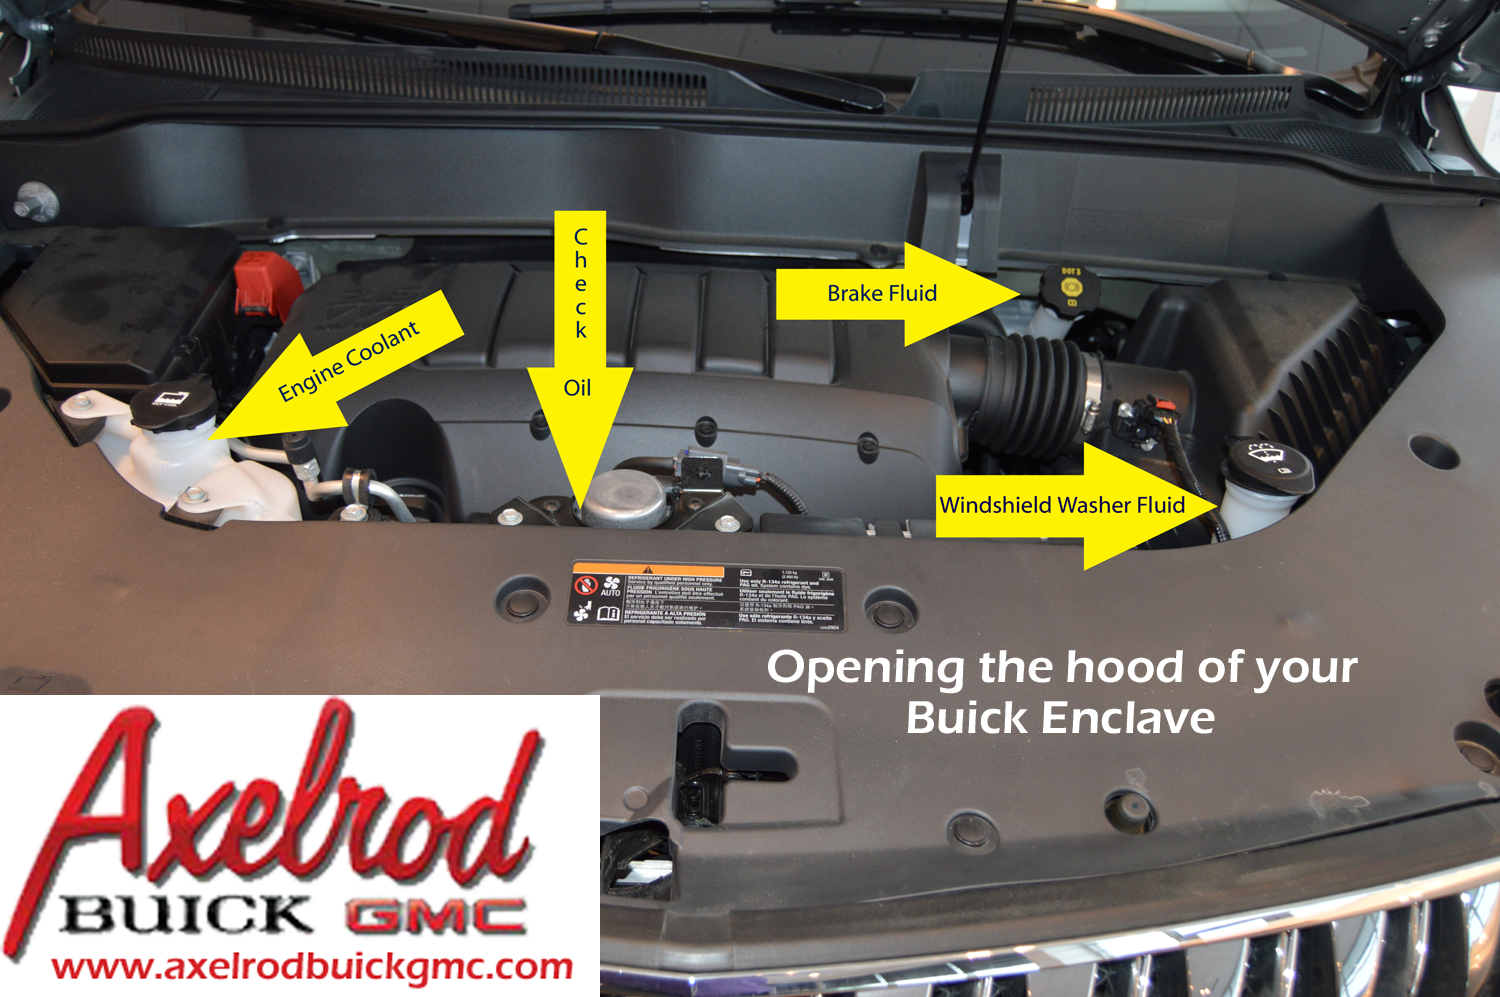 medium resolution of finding the hood latch on your buick enclave ask axelrod buick gmc in cleveland